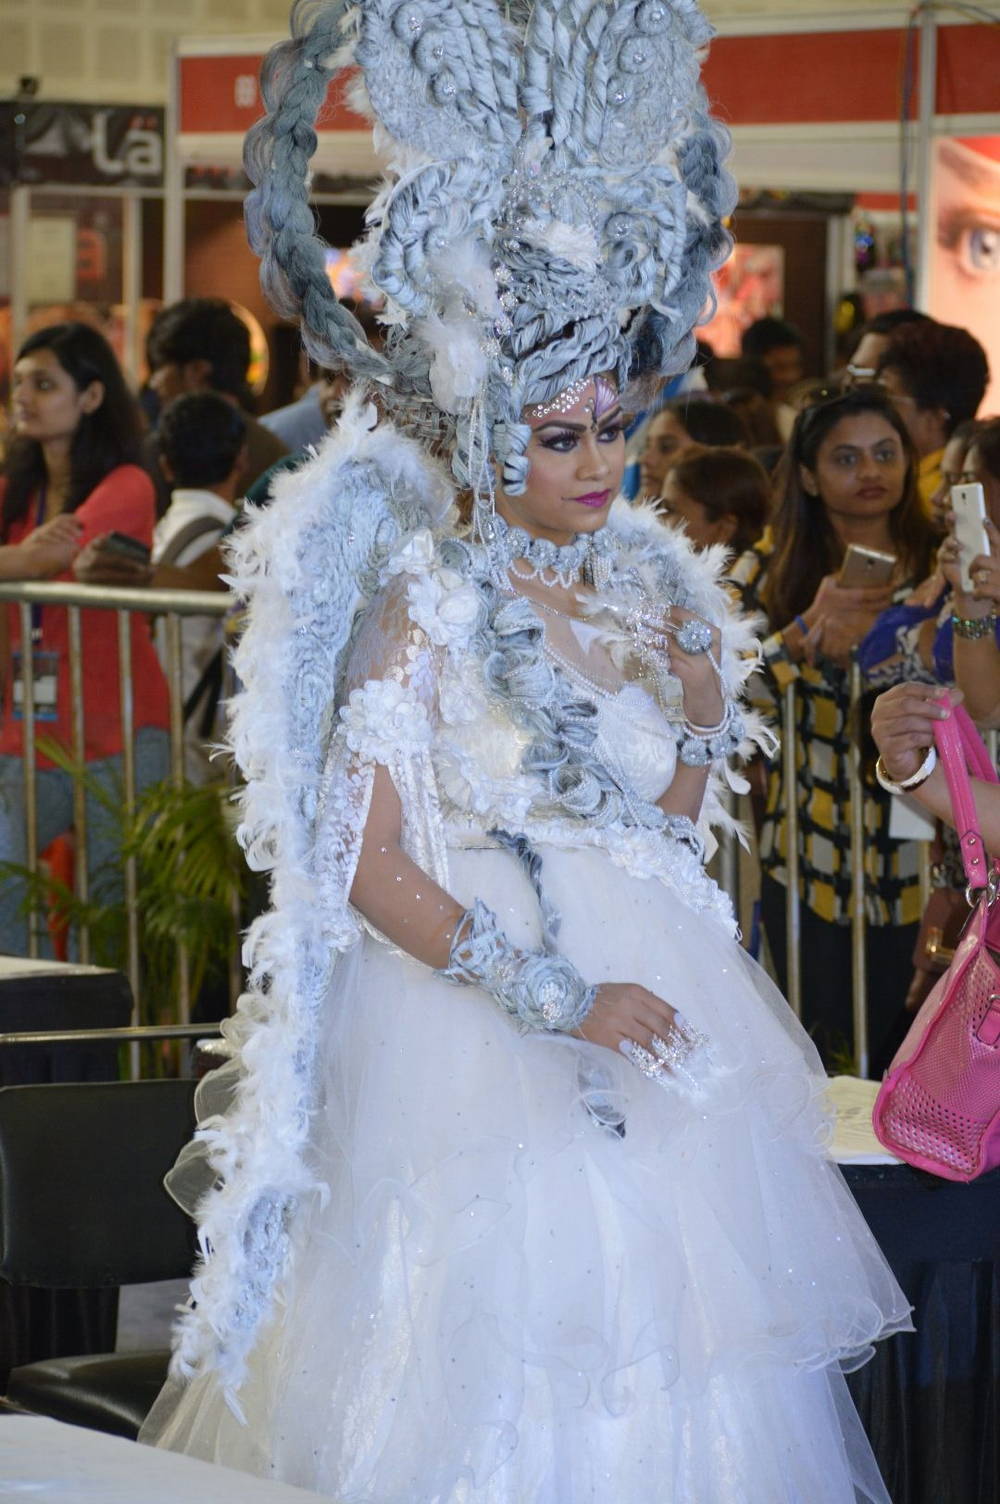 <p>A model adorned in white walks the runway at an AIHBA event.</p>